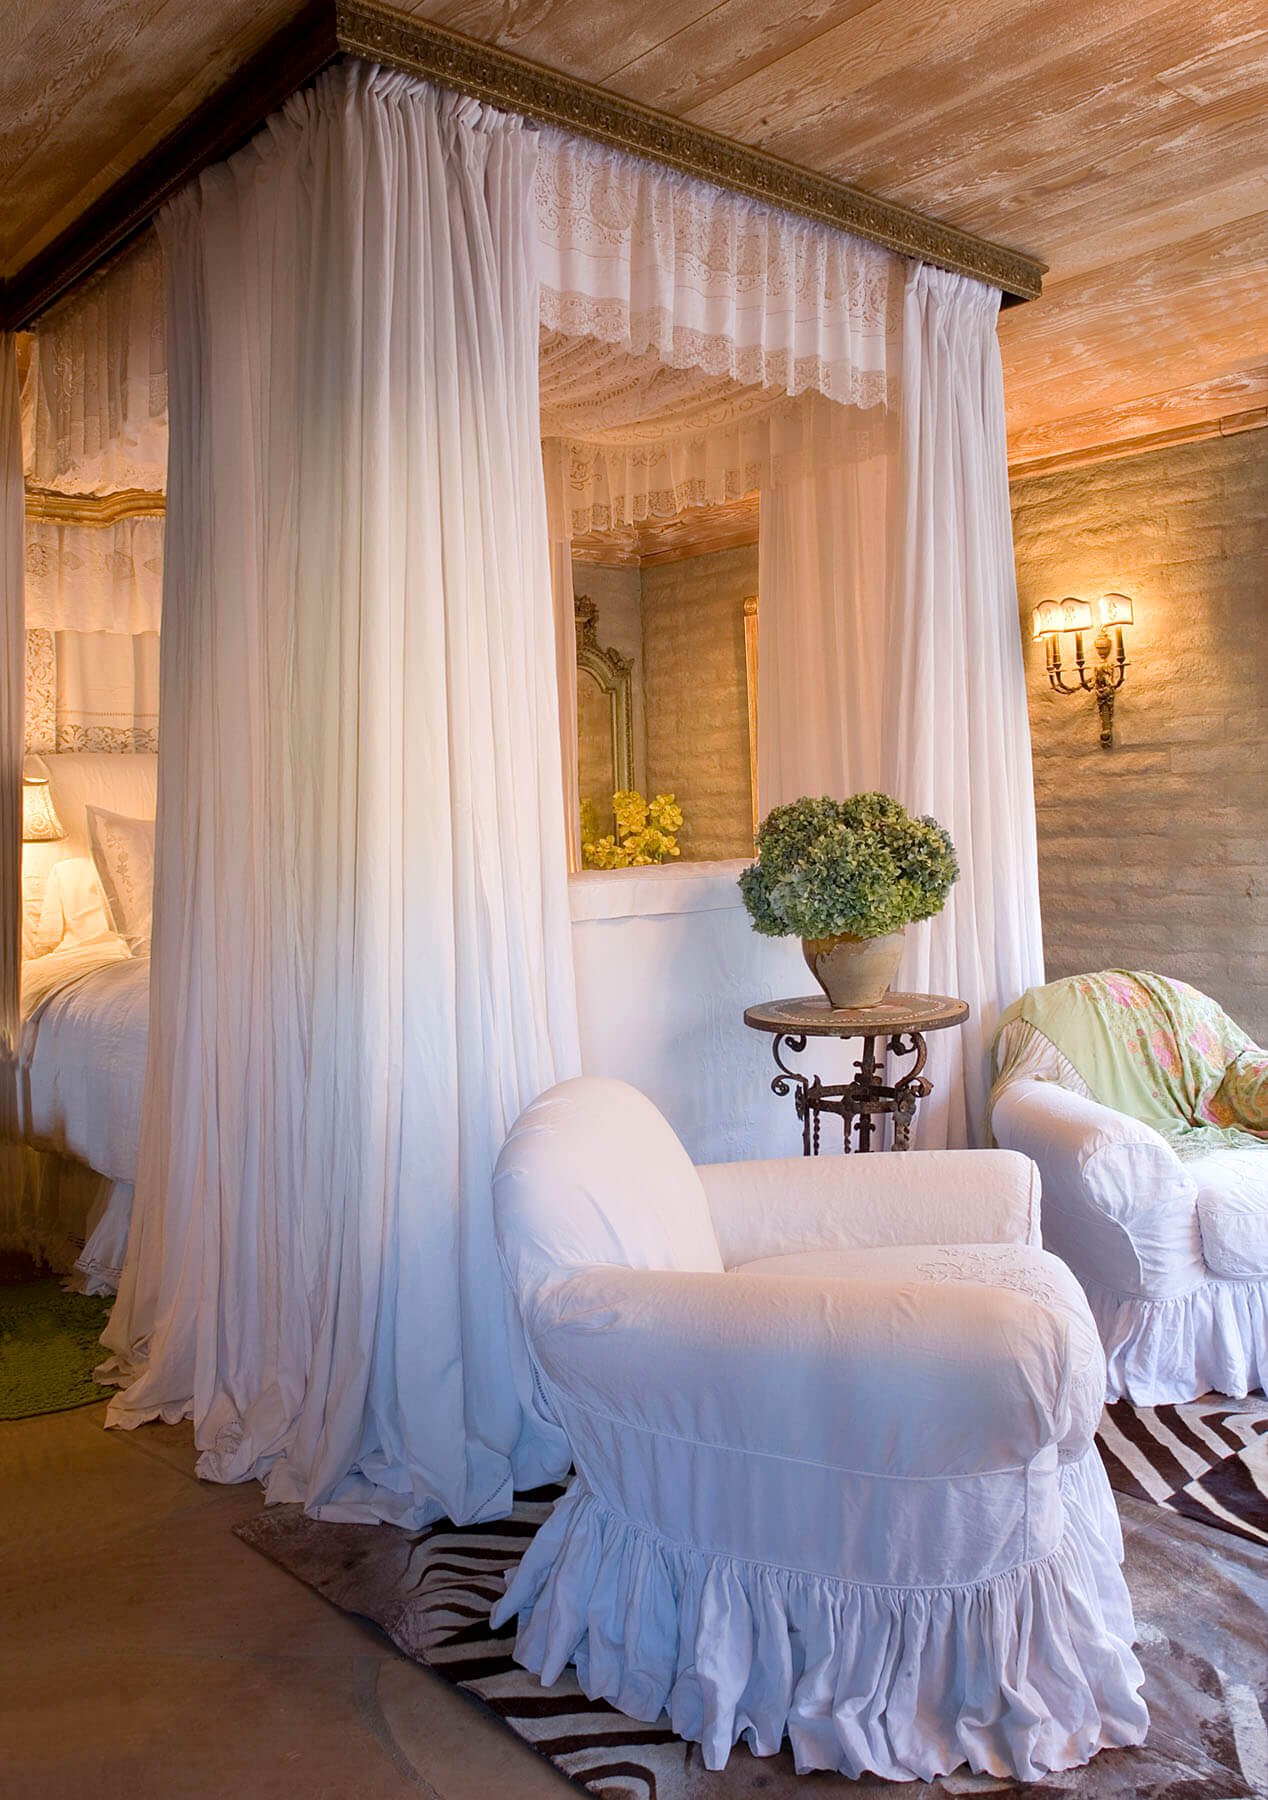 25+ Best Romantic Bedroom Decor Ideas and Designs for 2020 on Room Decor Ideas  id=37458